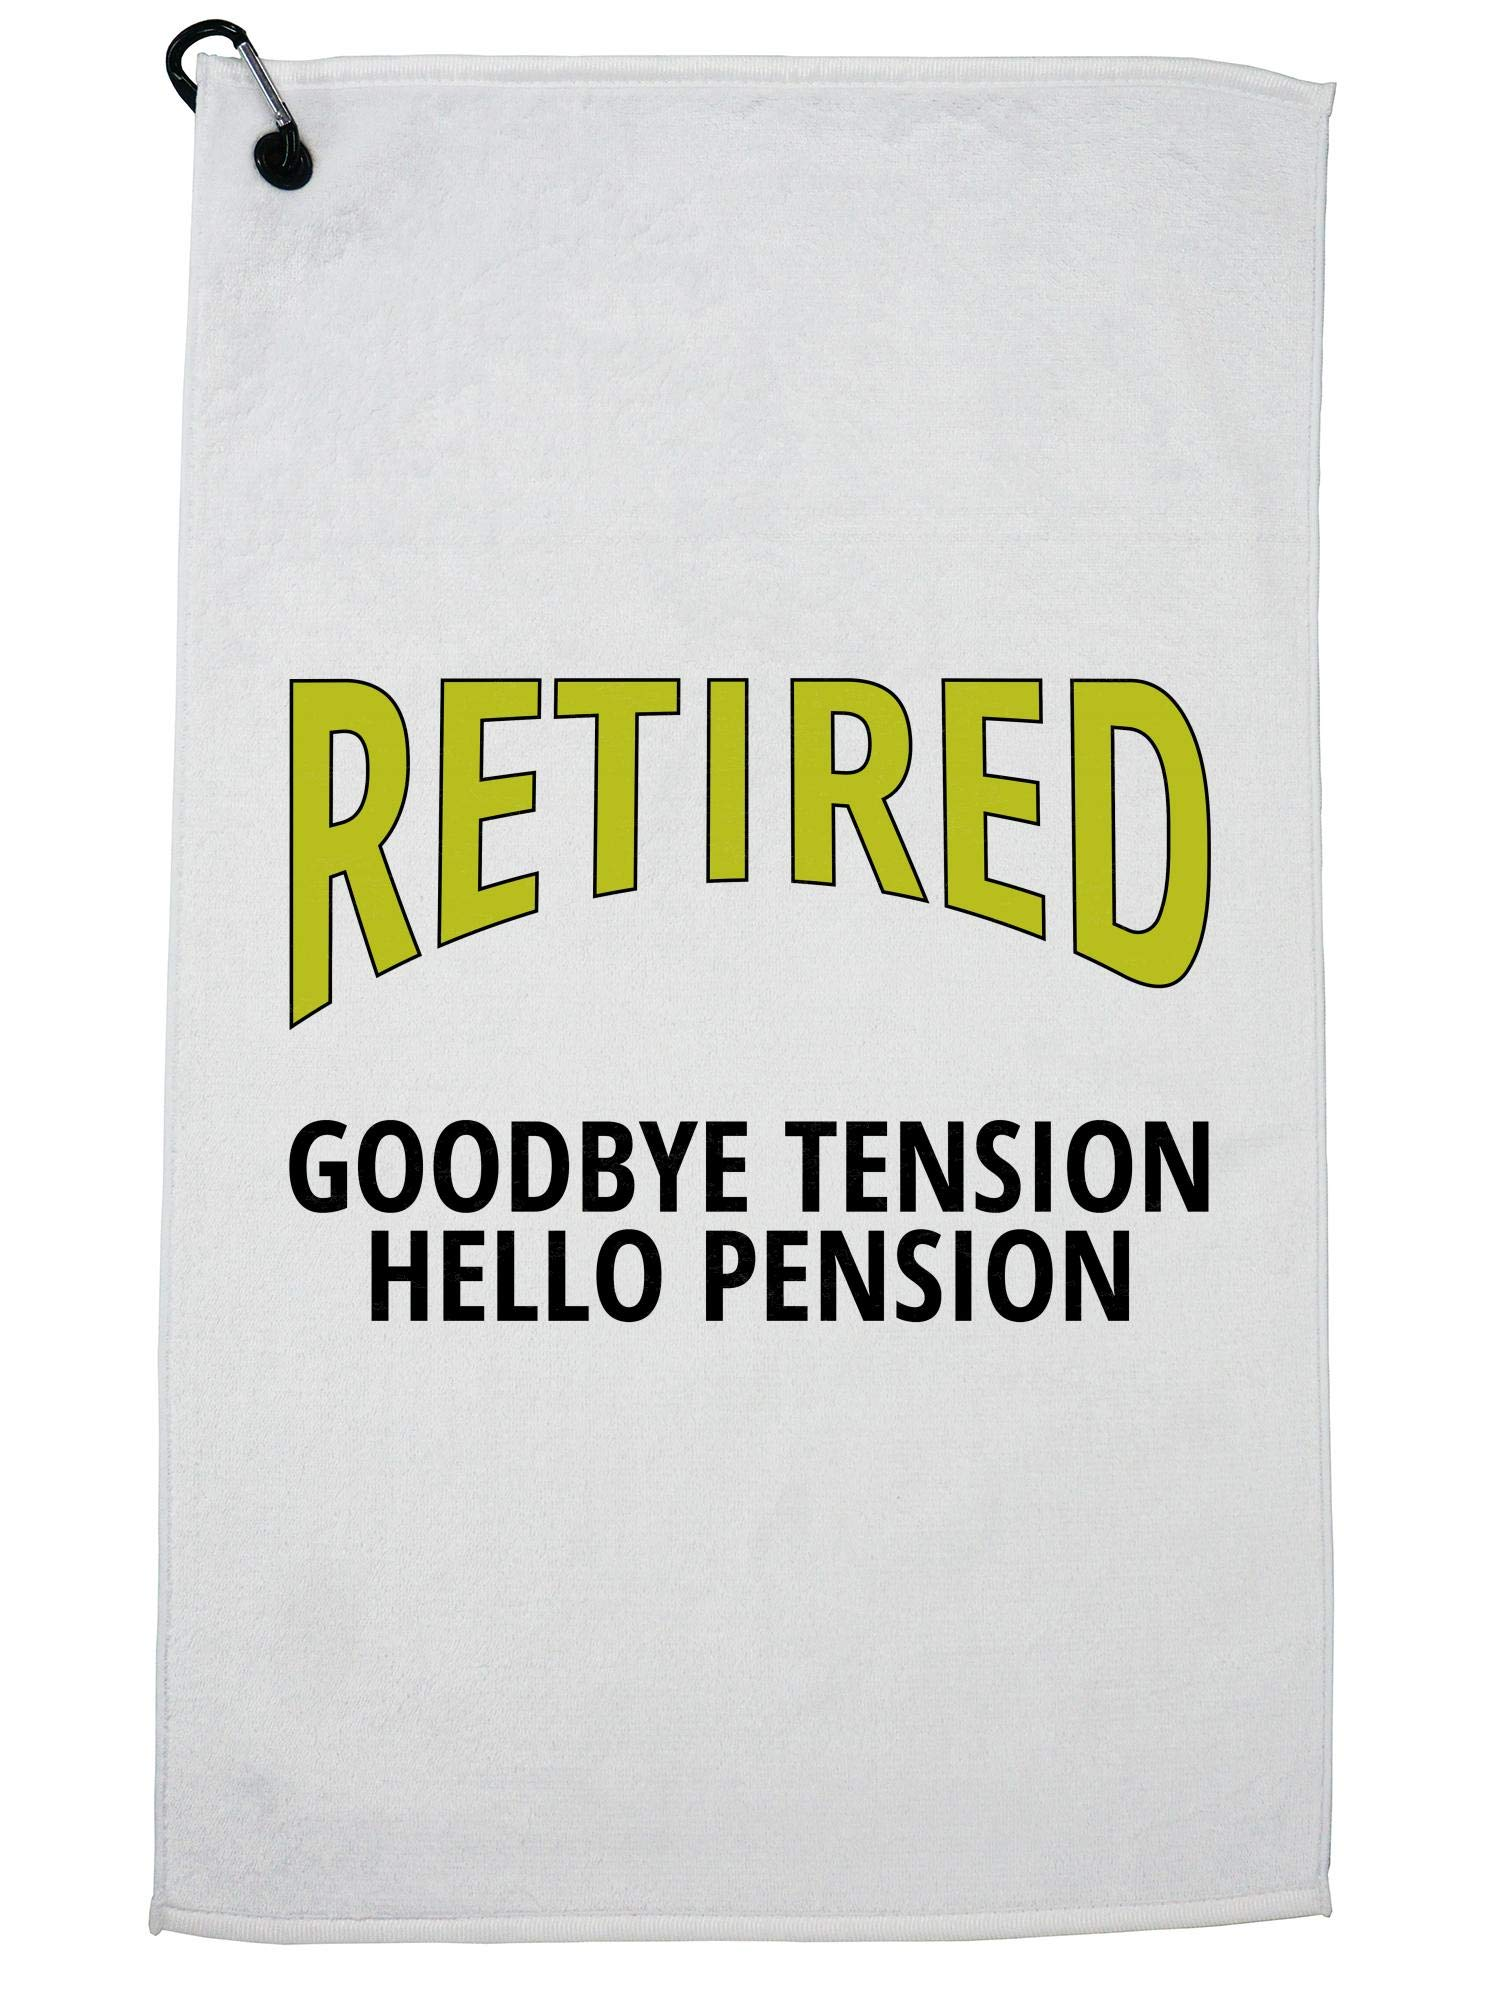 Retired Goodbye Tension Hello Pension Retirement Golf Towel with Carabiner Clip